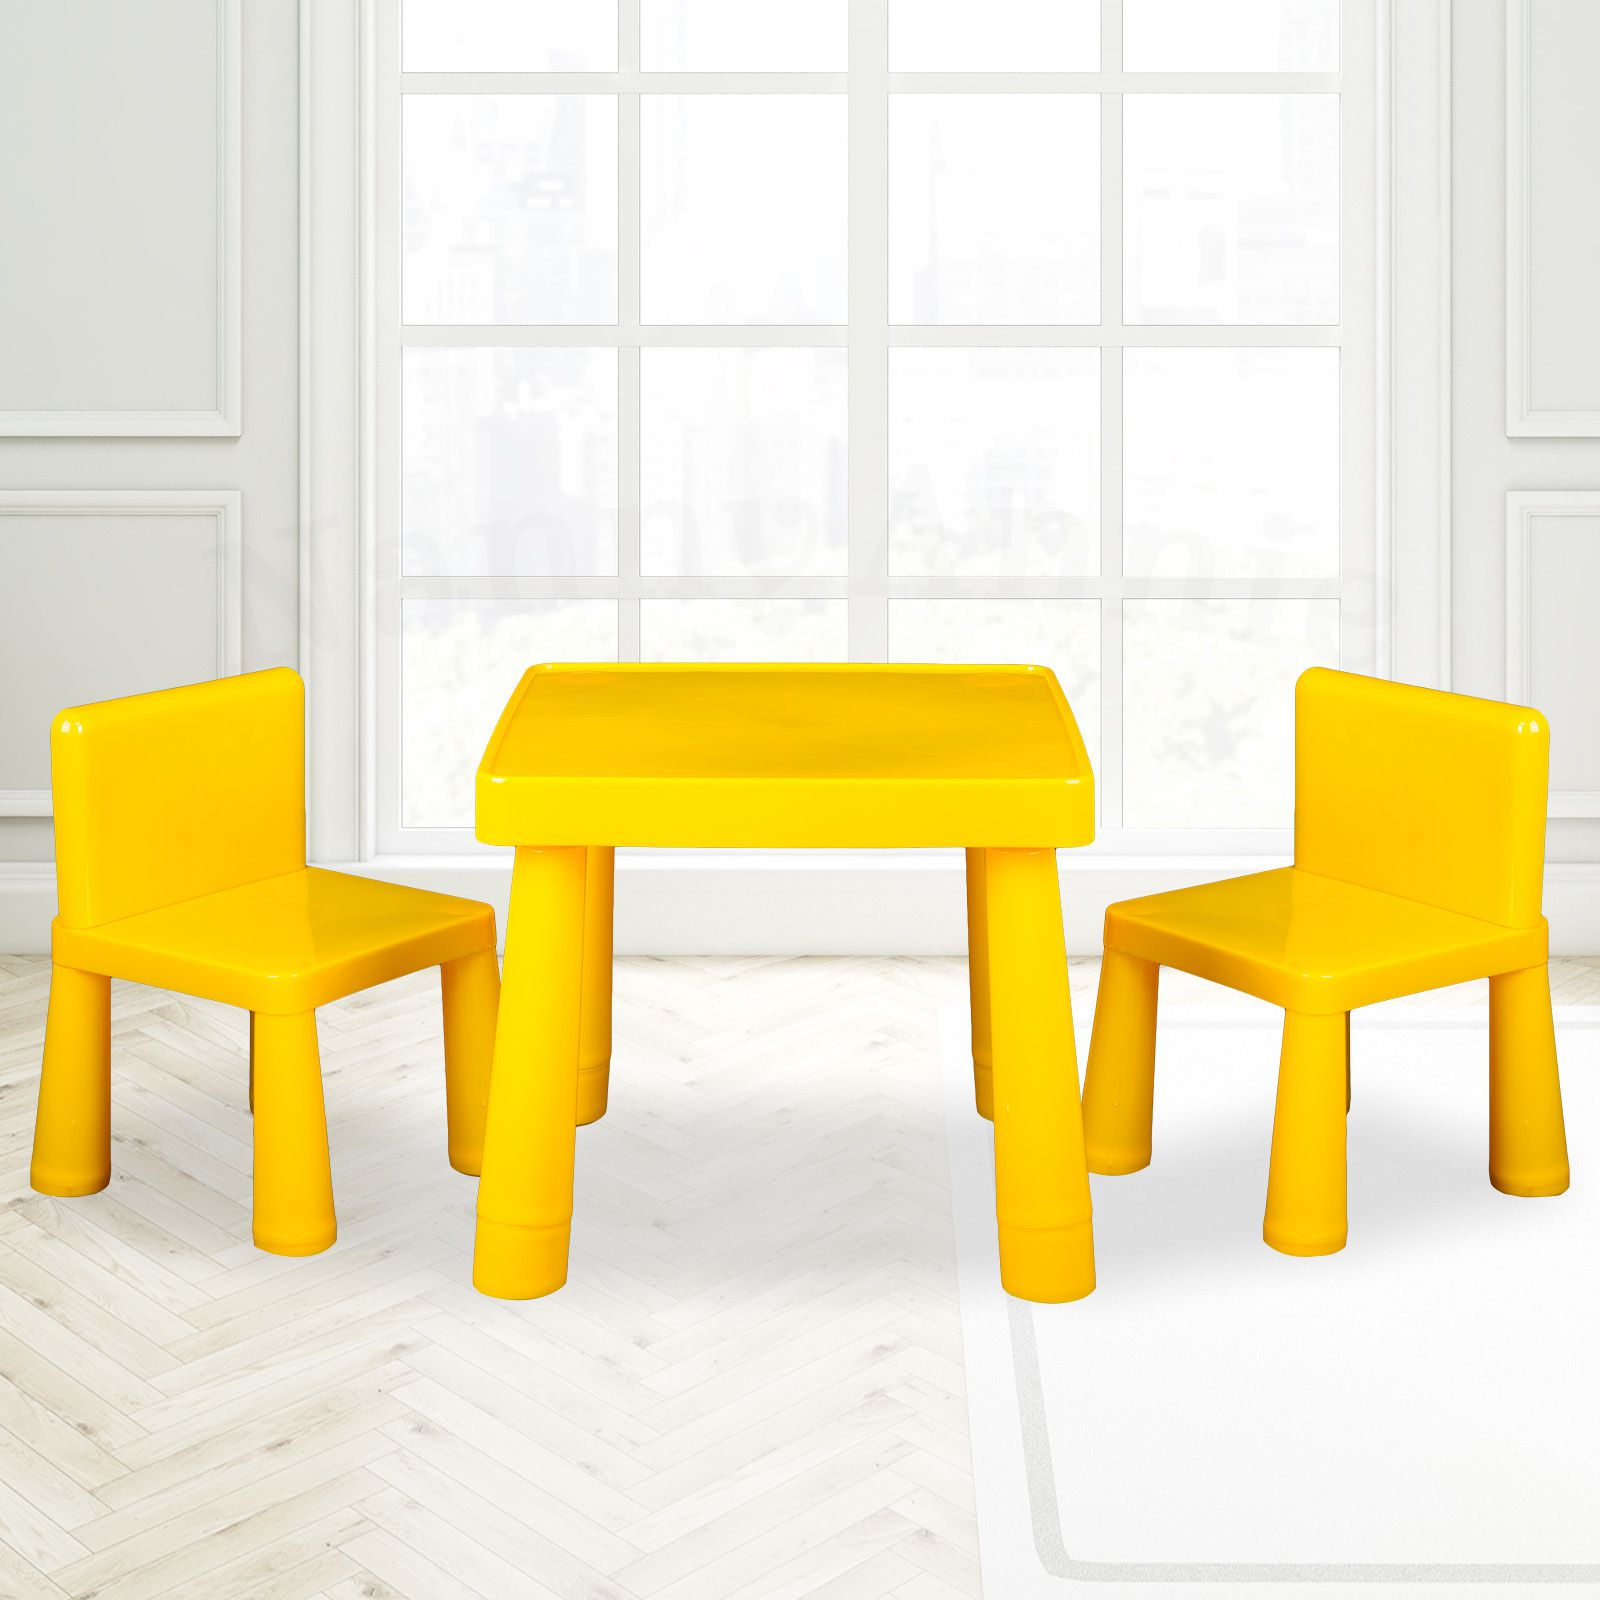 Stupendous Kids Table Chair Play Furniture Set Plastic Fountain Activity Dining Chairs Yellow Interior Design Ideas Gresisoteloinfo